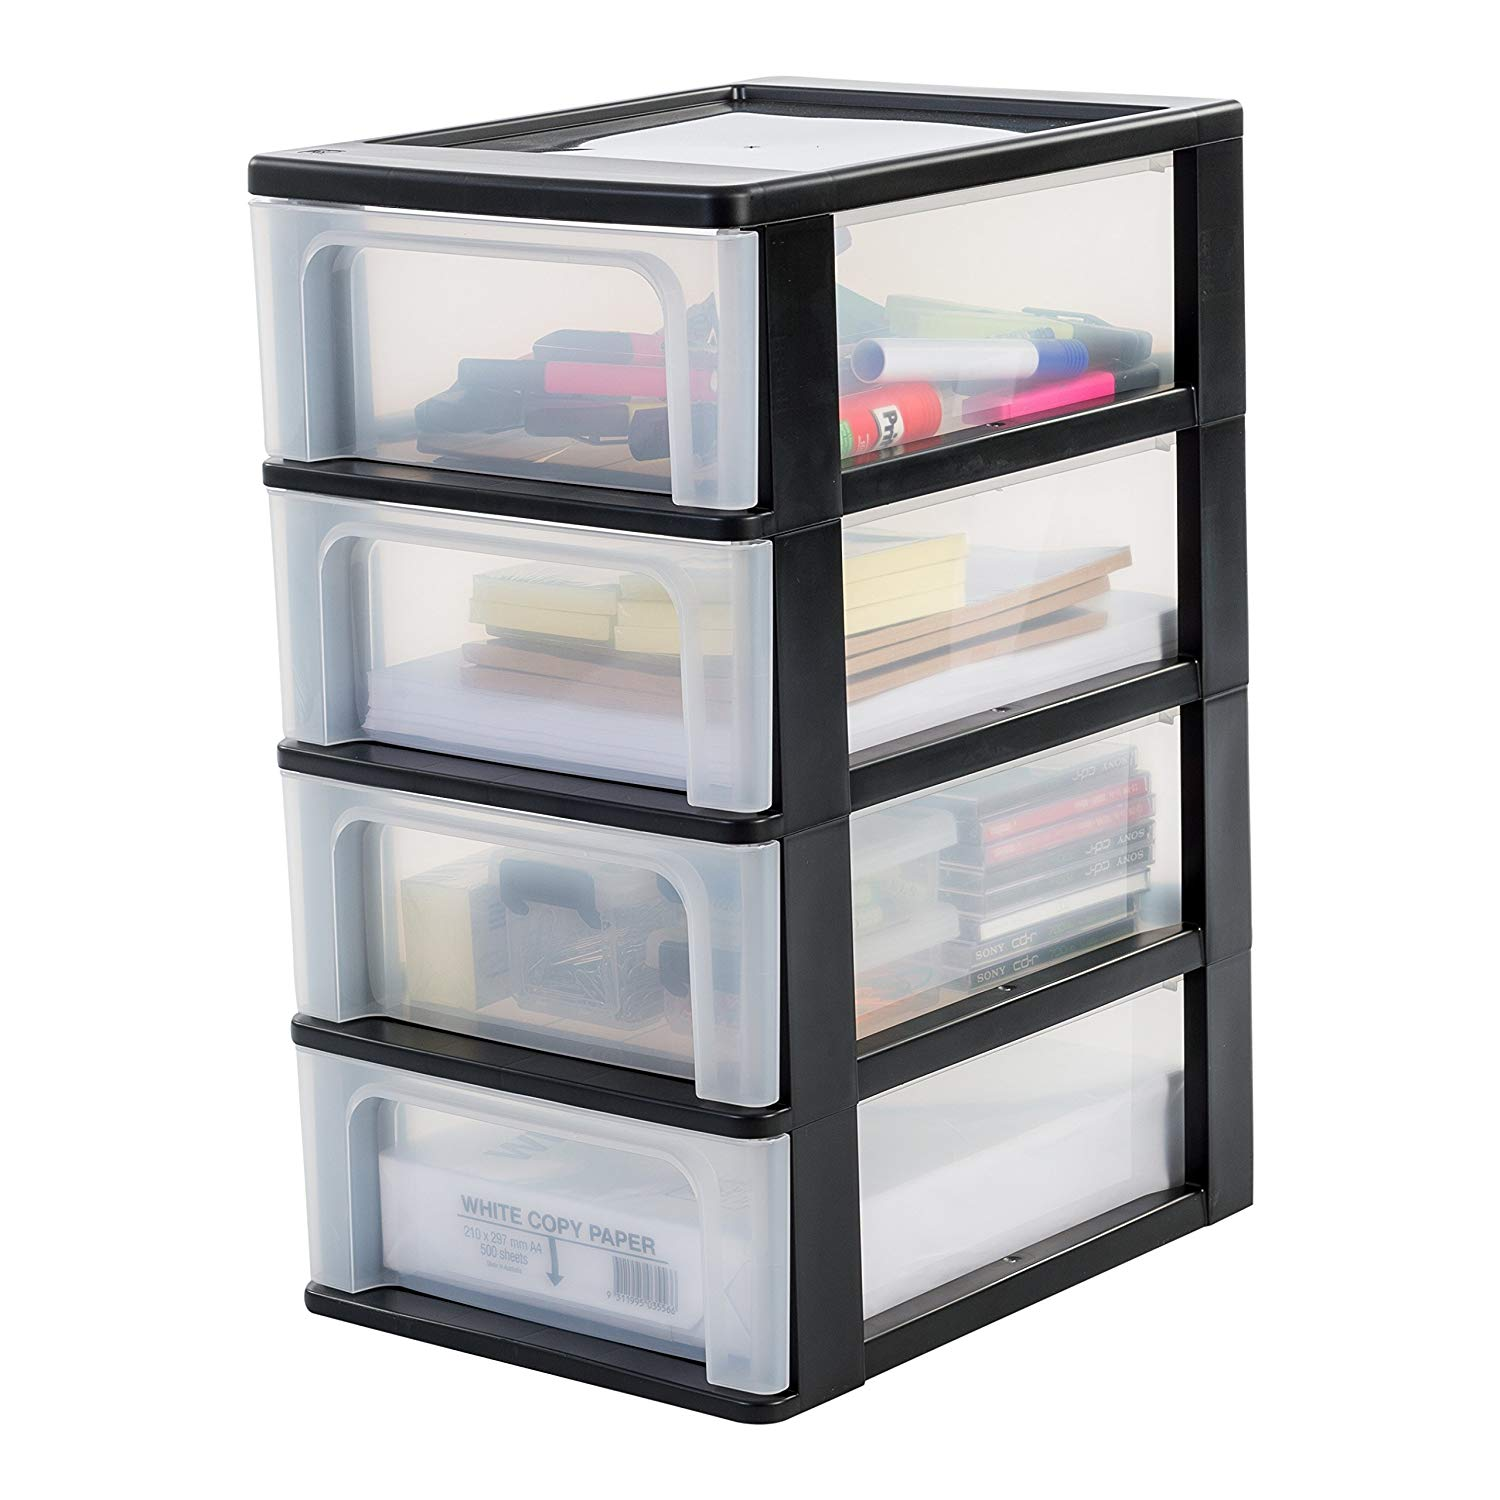 Iris Ohyama Europe A- Chest with 4 (Without Wheels) for £19.19